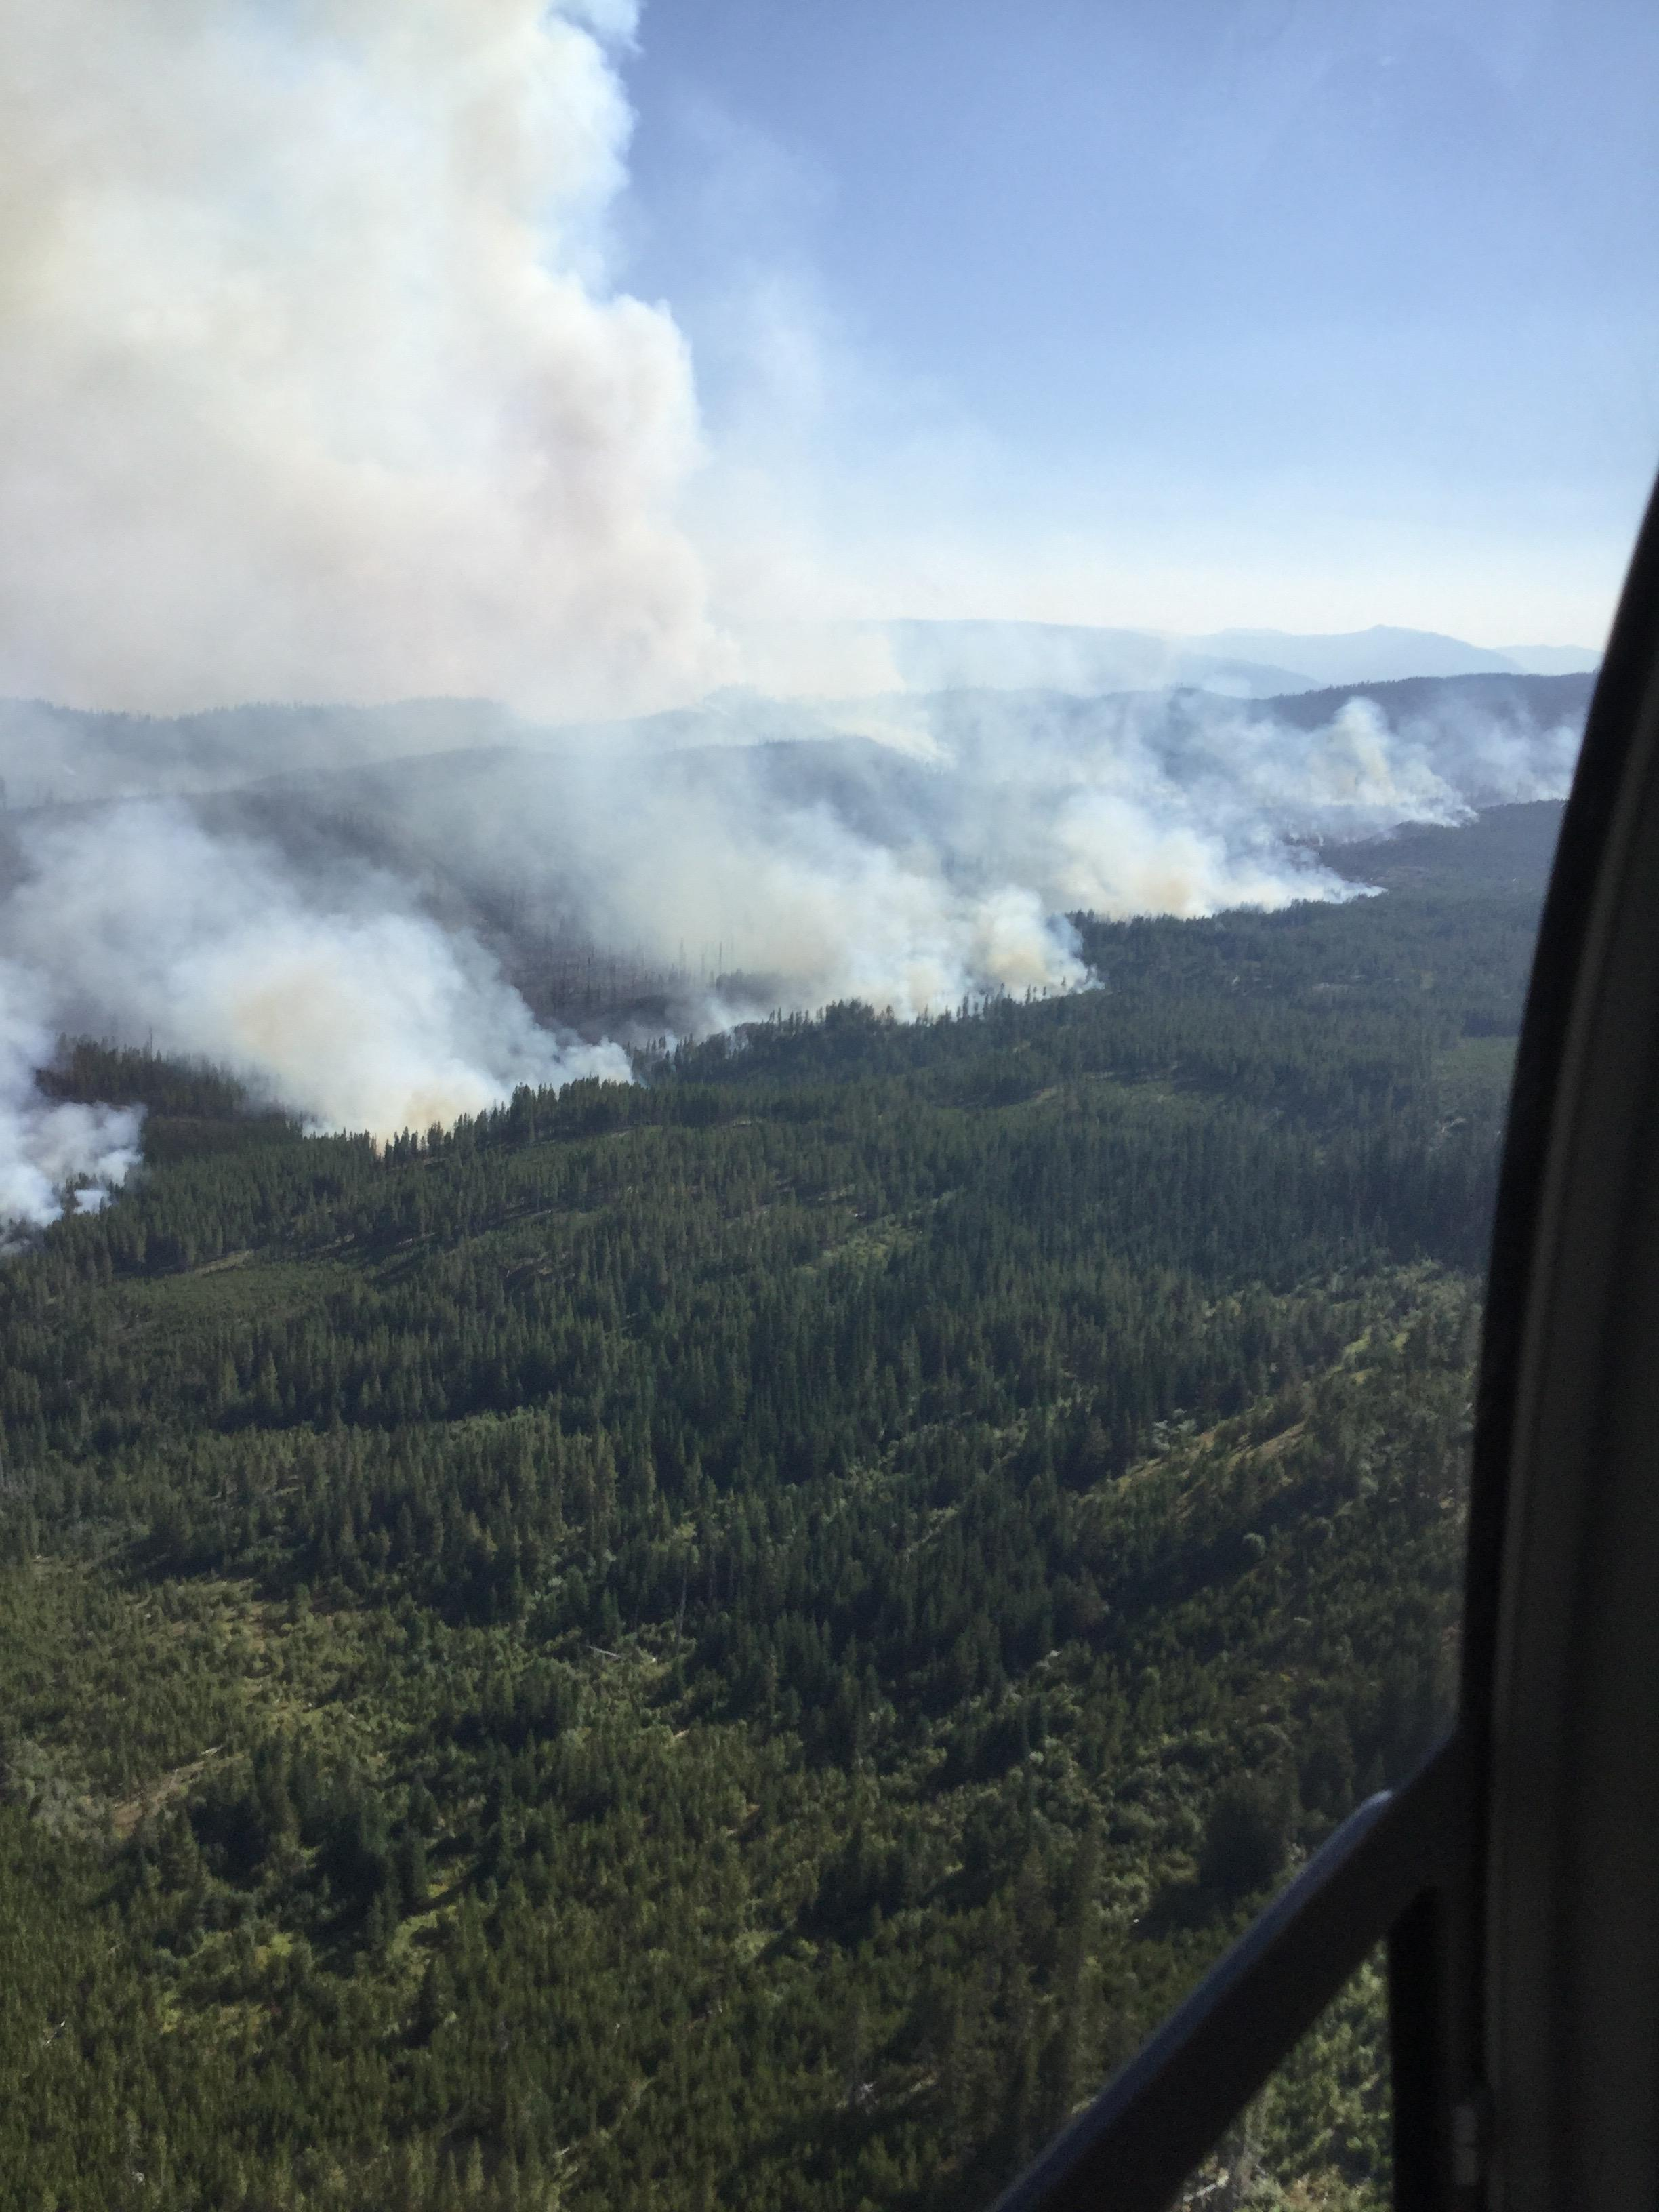 The Highline Fire, located about 23 miles east/northeast of Warren, has grown to about 68,000 acres as of Tuesday morning and is continues to be extremely active, fire managers say. The lightning-caused fire, which started July 29, is being manned by about 85 fire crew members.